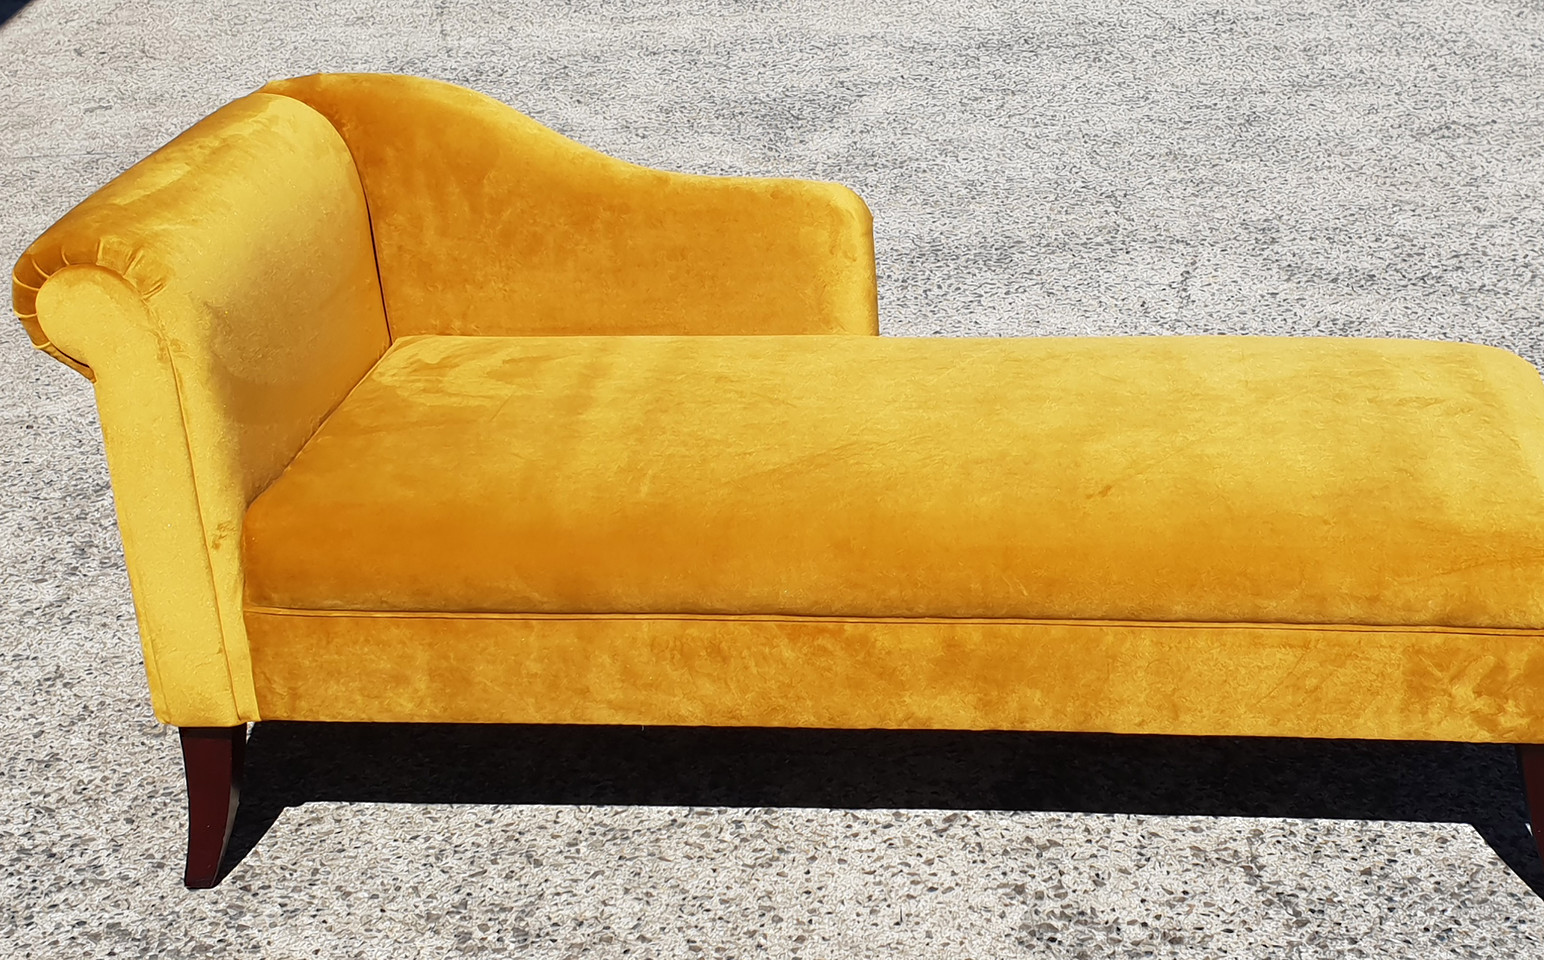 Restored & Renewed Plush Chaise.